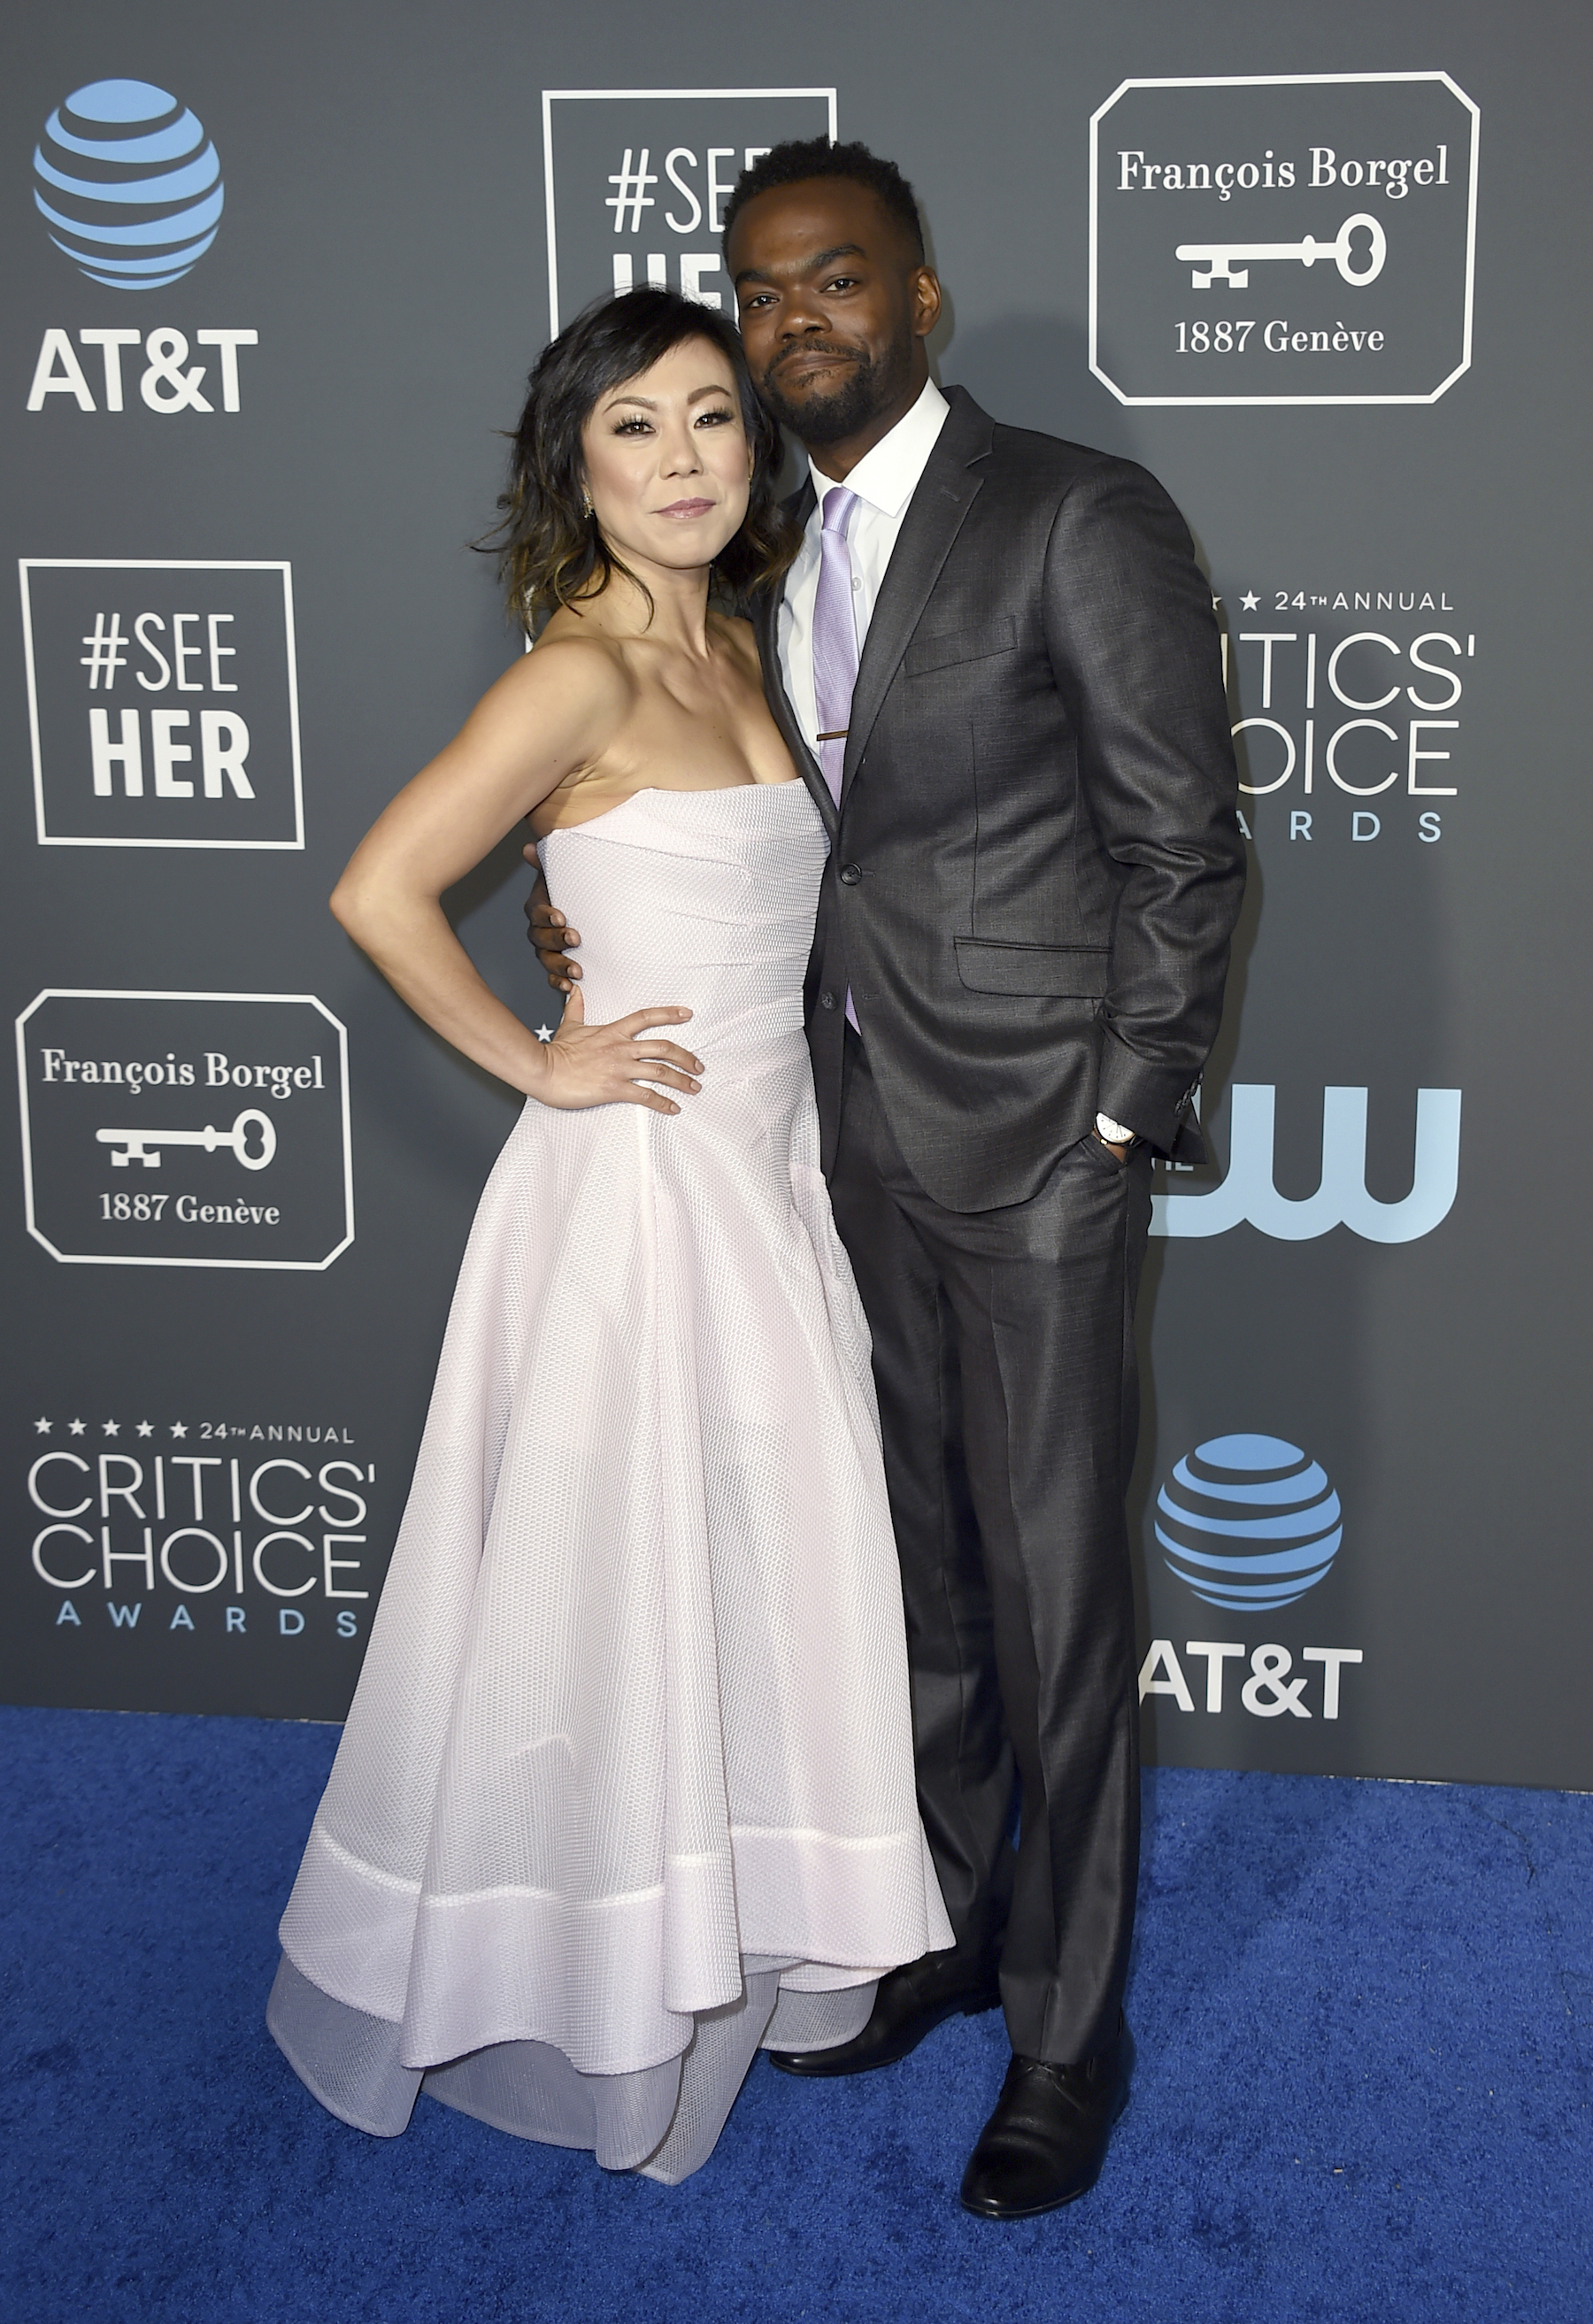 <div class='meta'><div class='origin-logo' data-origin='AP'></div><span class='caption-text' data-credit='Jordan Strauss/Invision/AP'>Ali Ahn, left, and William Jackson Harper arrive at the 24th annual Critics' Choice Awards on Sunday, Jan. 13, 2019, at the Barker Hangar in Santa Monica, Calif.</span></div>